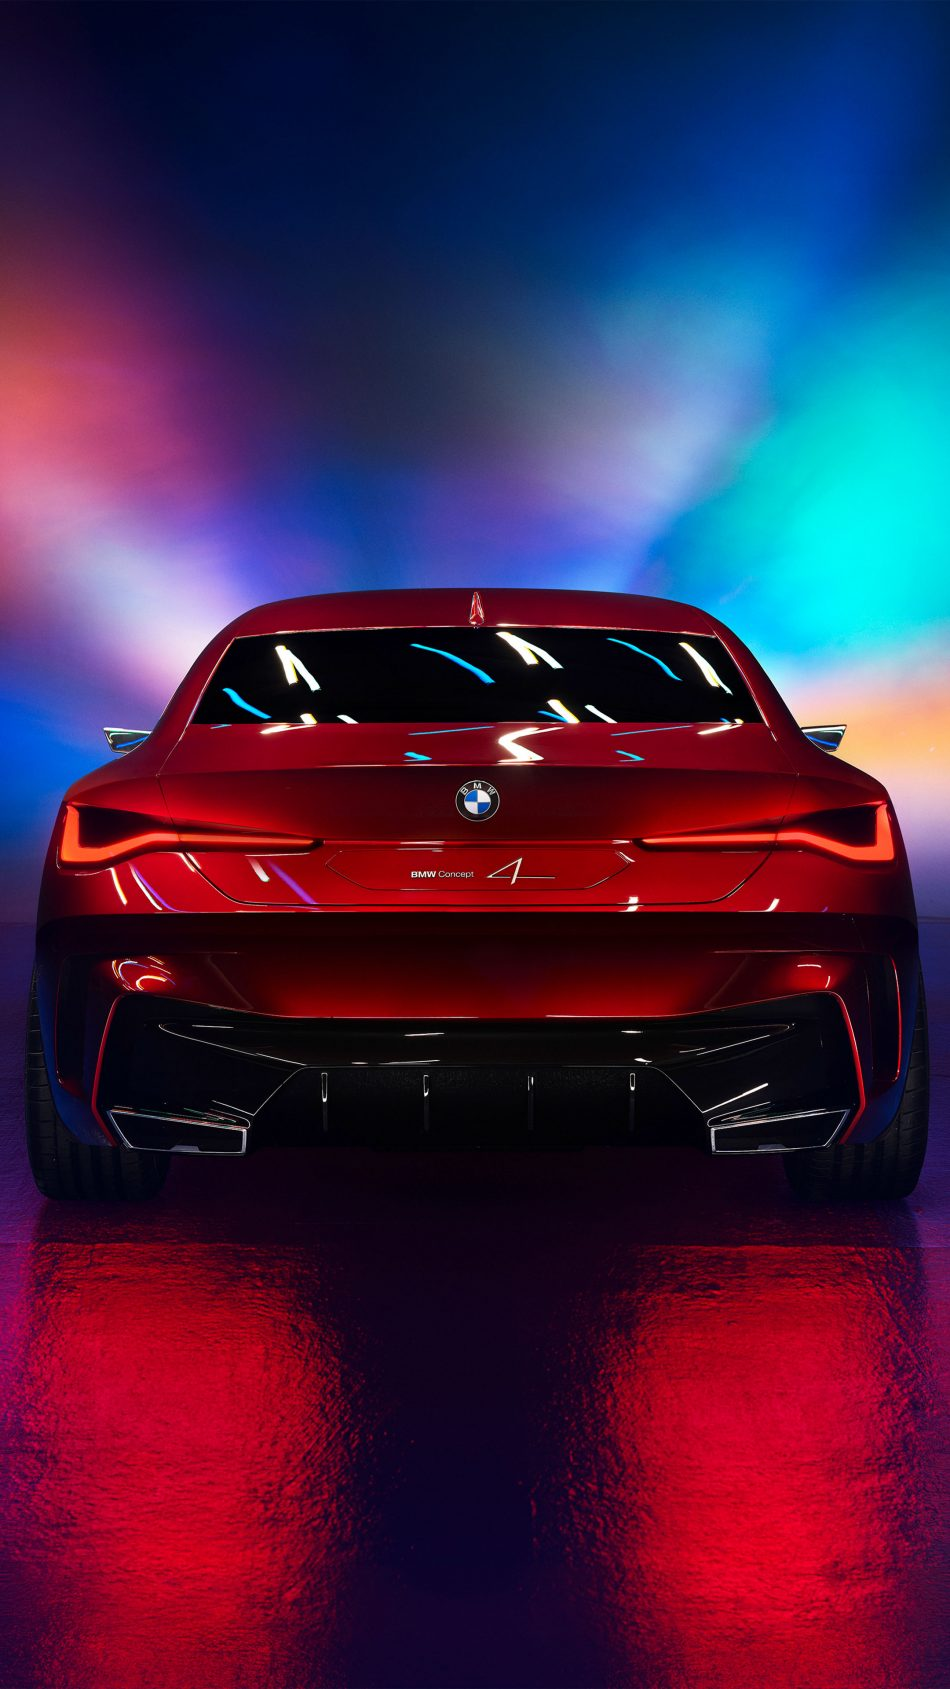 Bmw Concept 4 2019 4k Ultra Hd Mobile Wallpaper In 2021 Bmw Concept Bmw Wallpaper Bmw